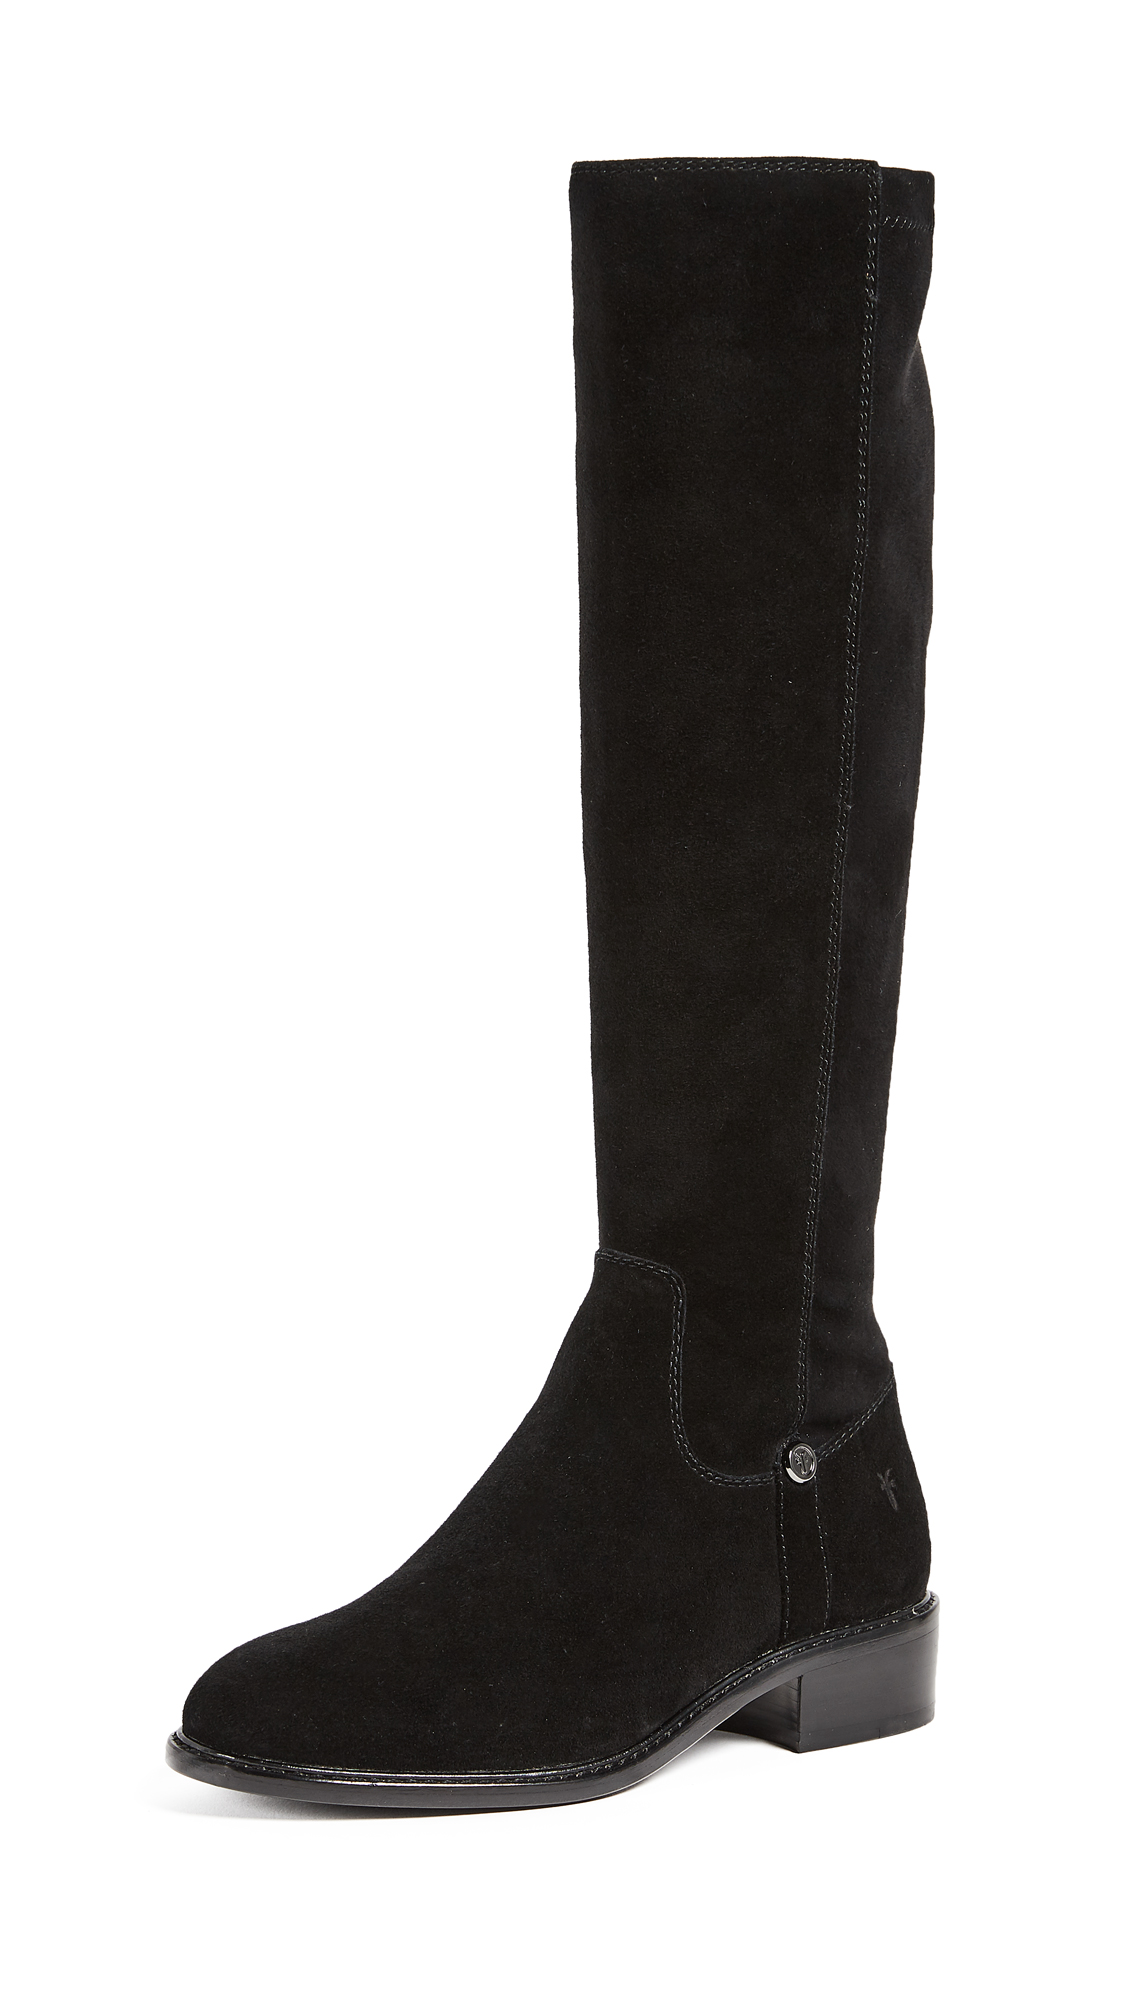 Frye Taylor Stretch Tall Boots - Black